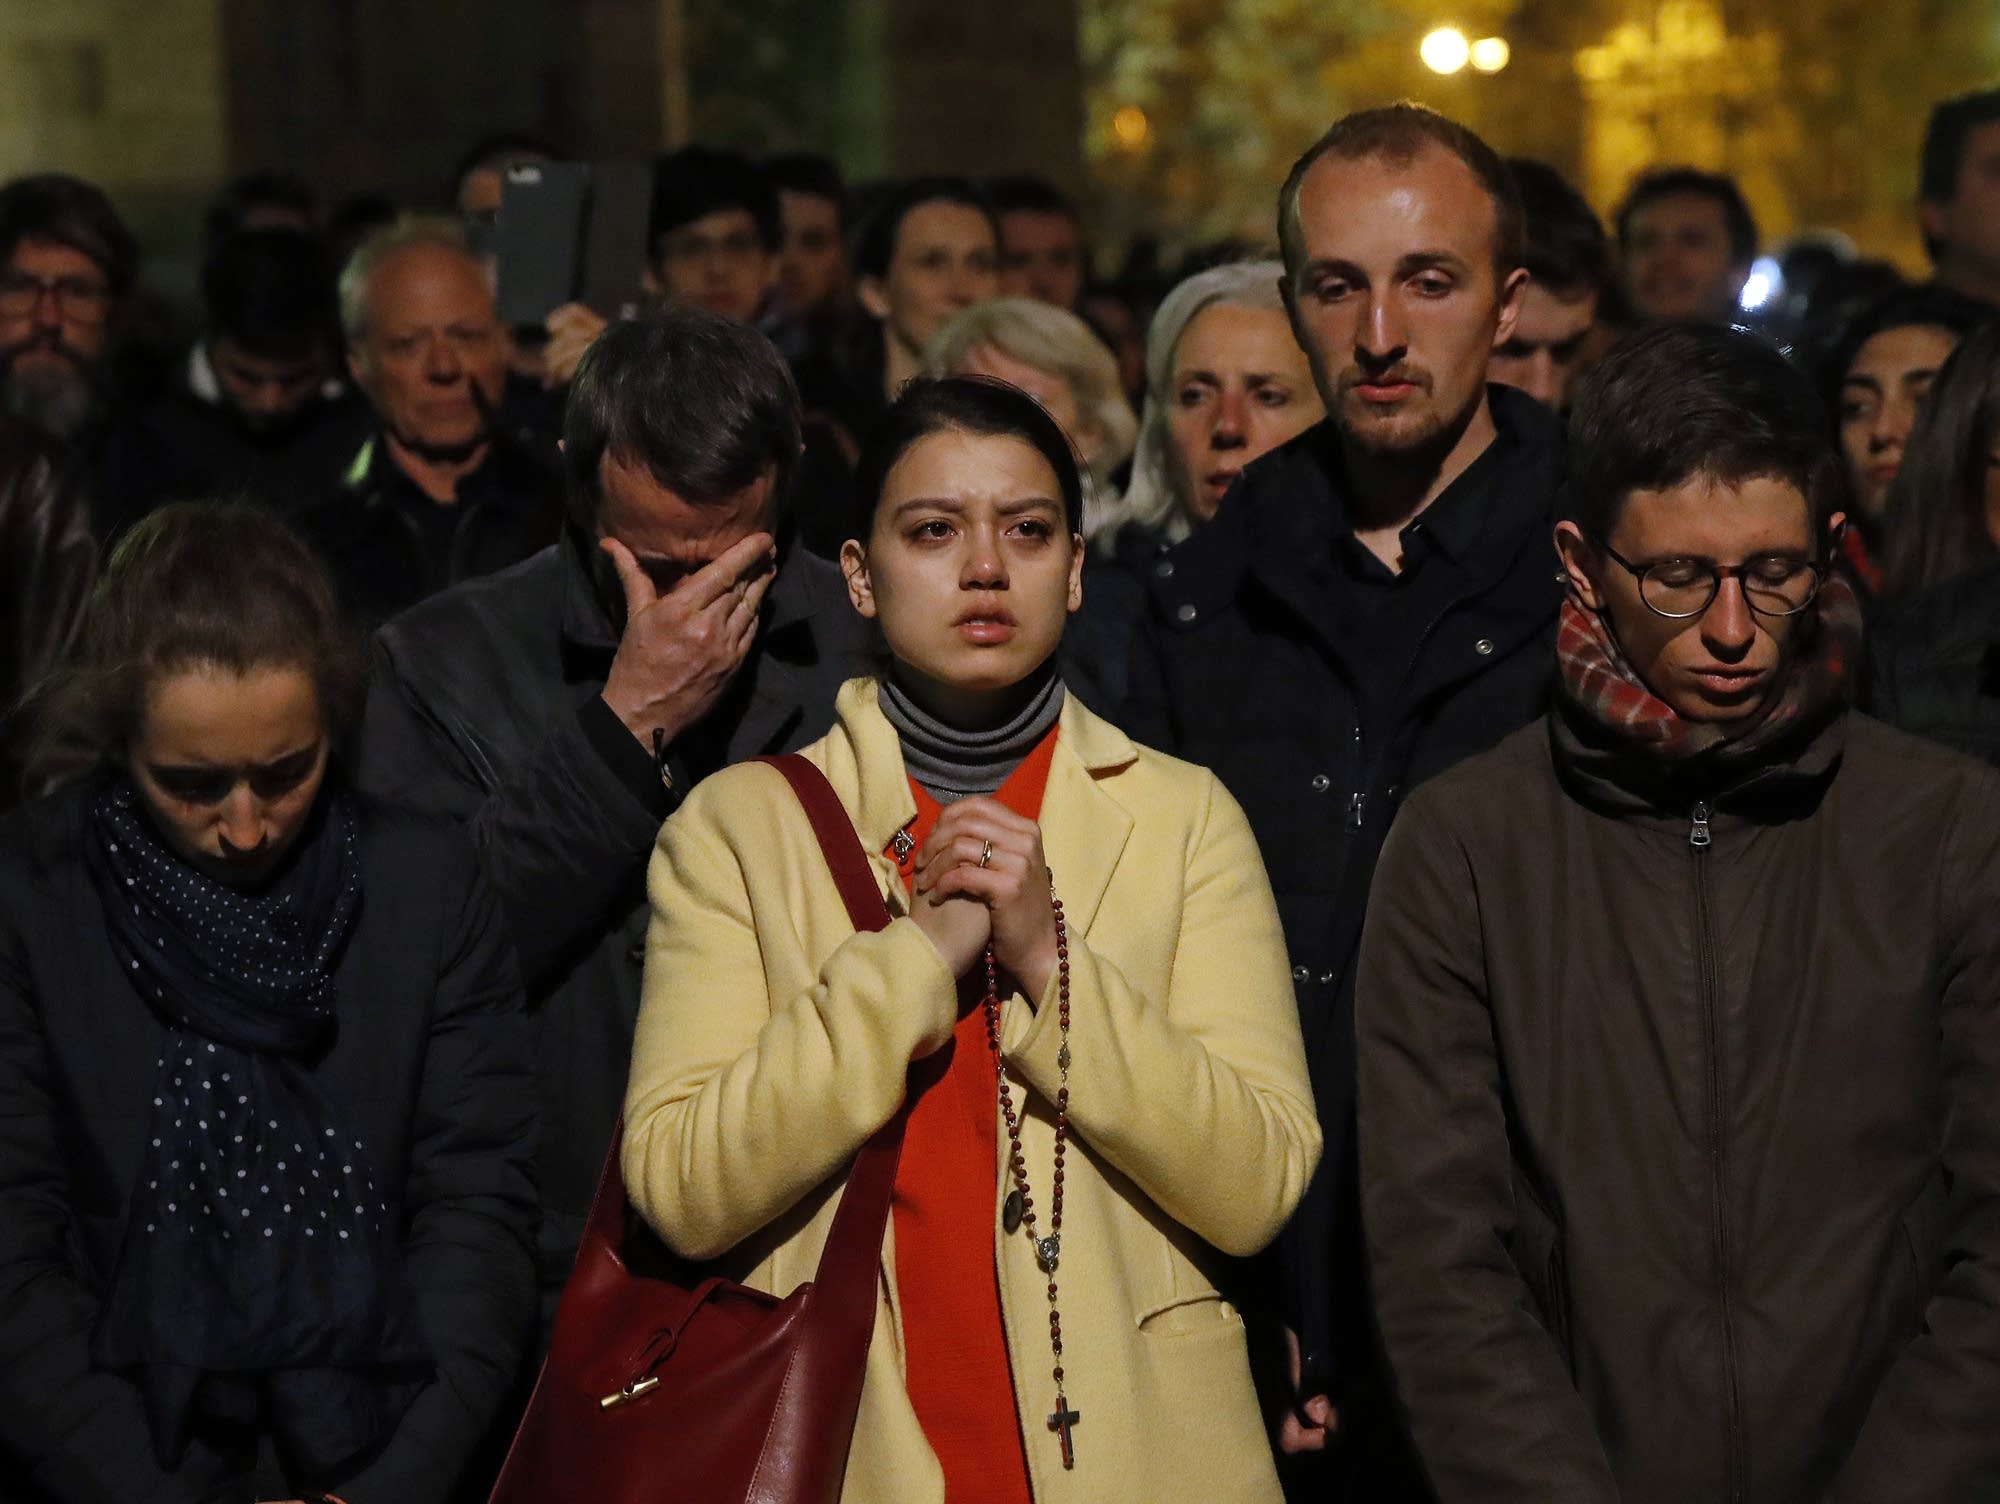 People pray as Notre Dame cathedral burns in Paris Monday, April 15, 2019.